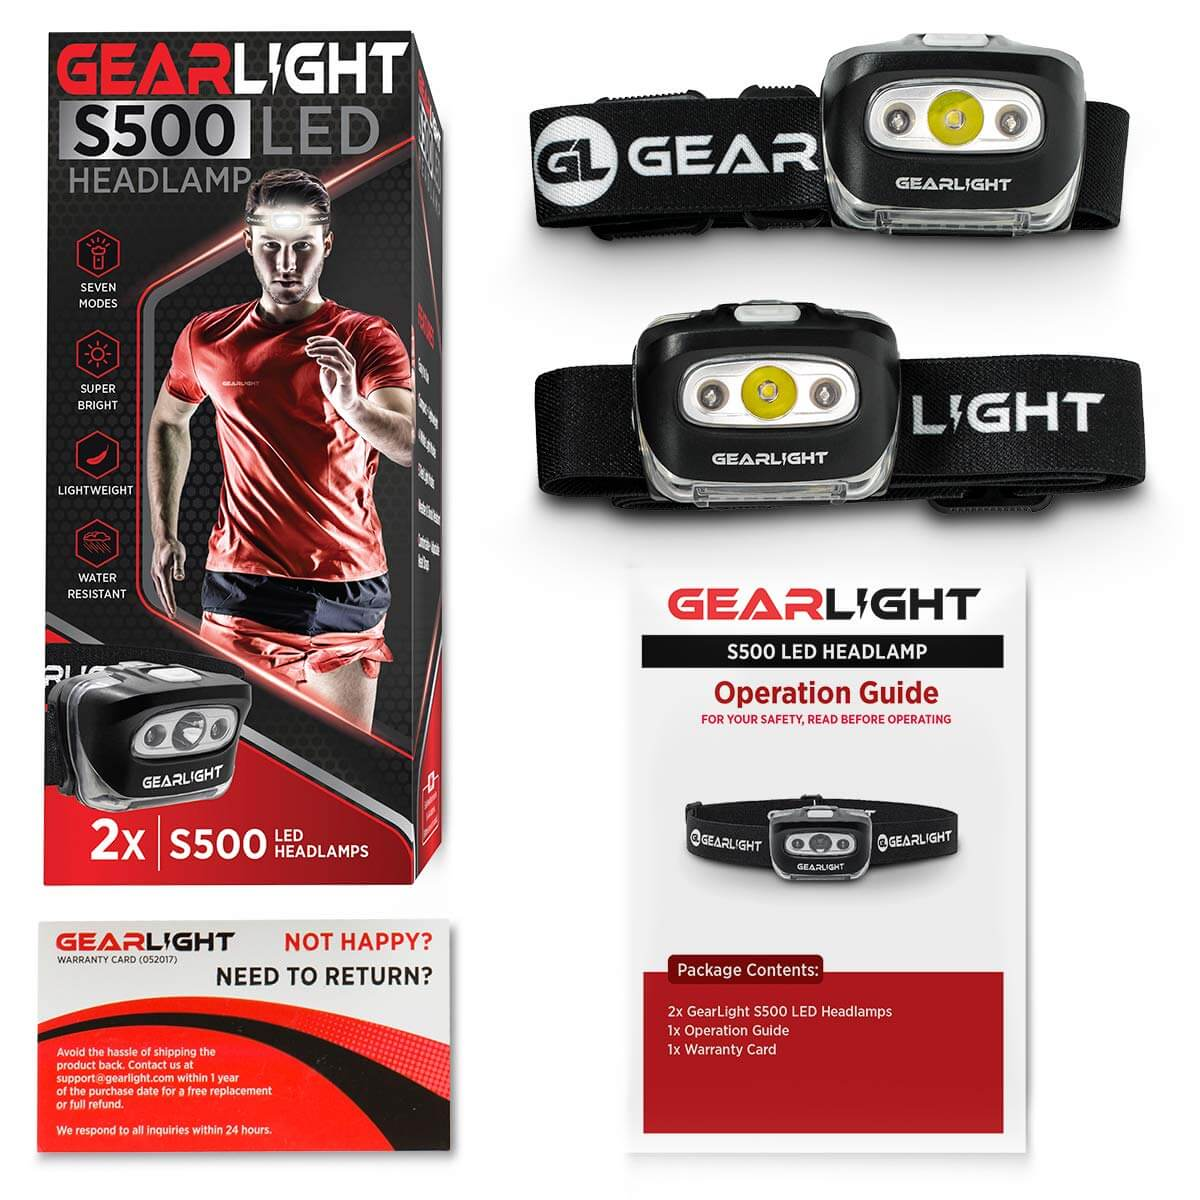 Gearlights Headlamp Review